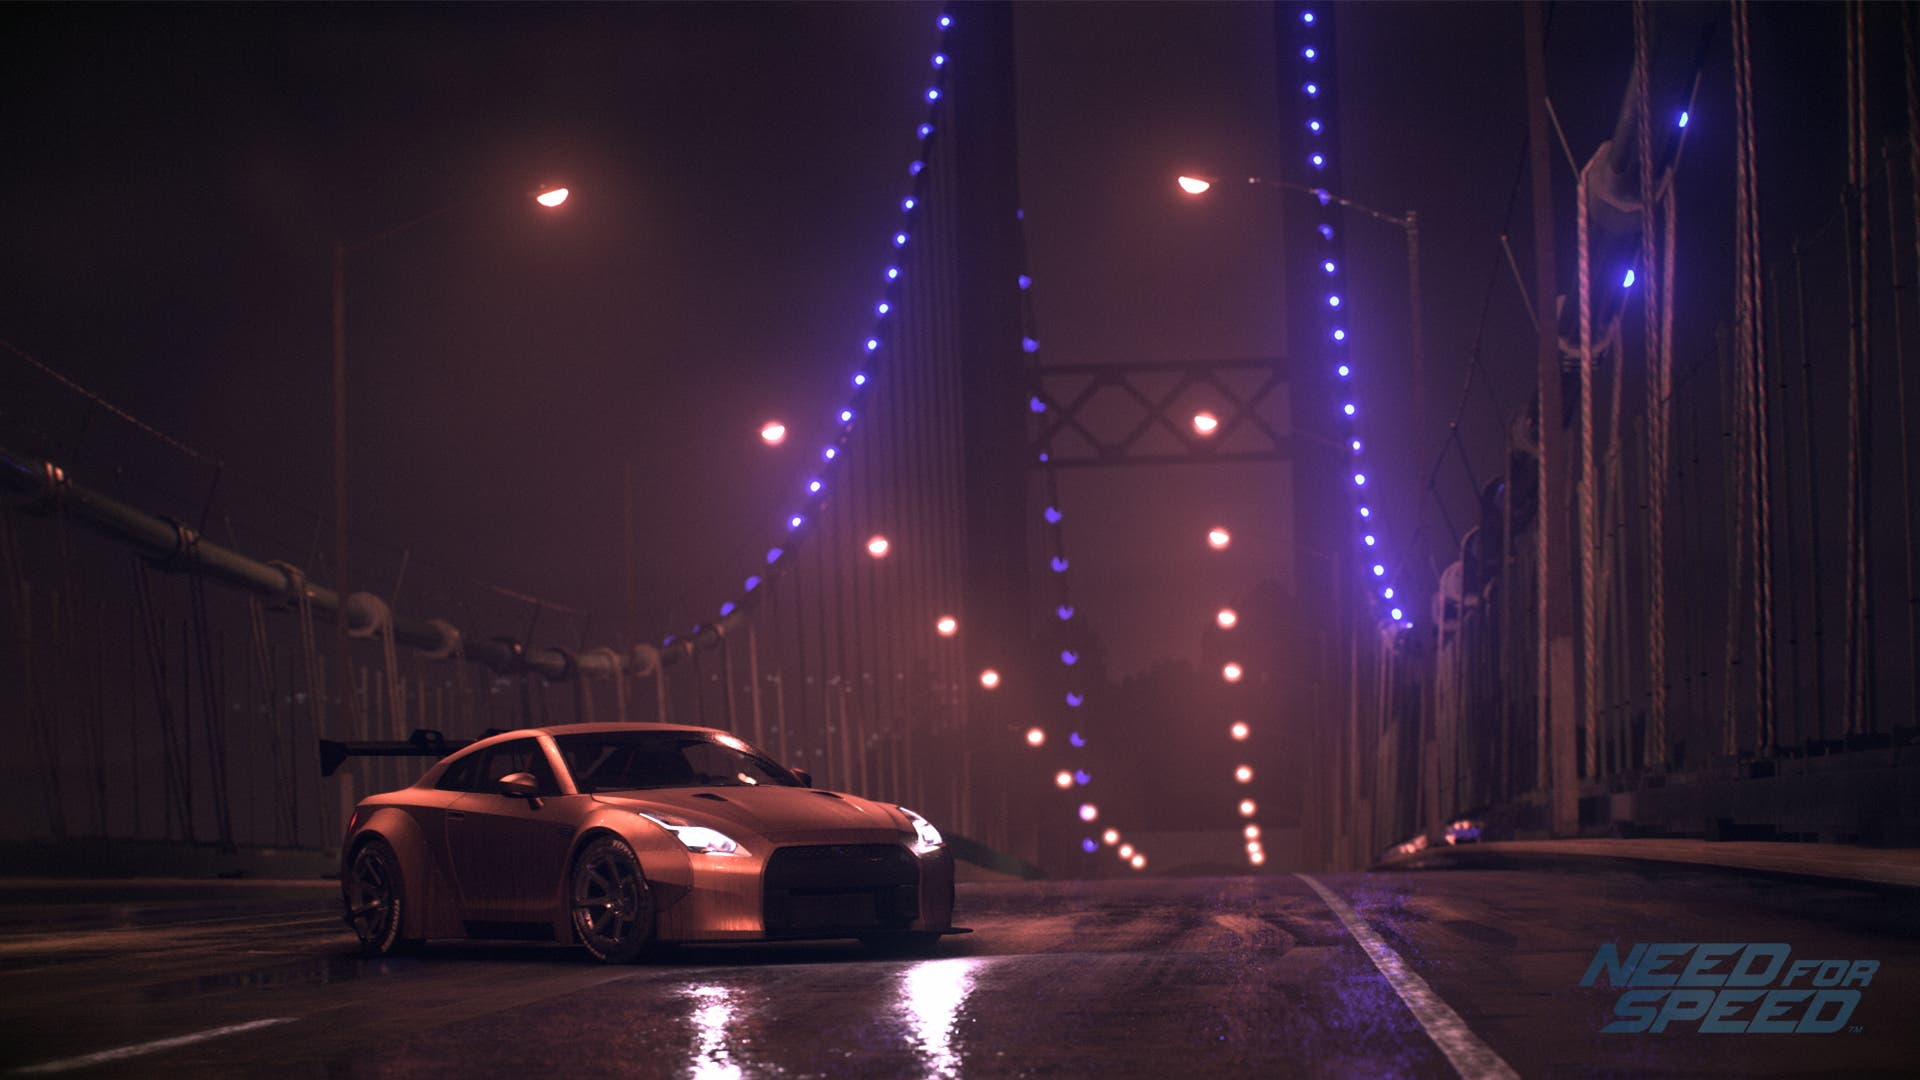 NeedForSpeed-review(2)